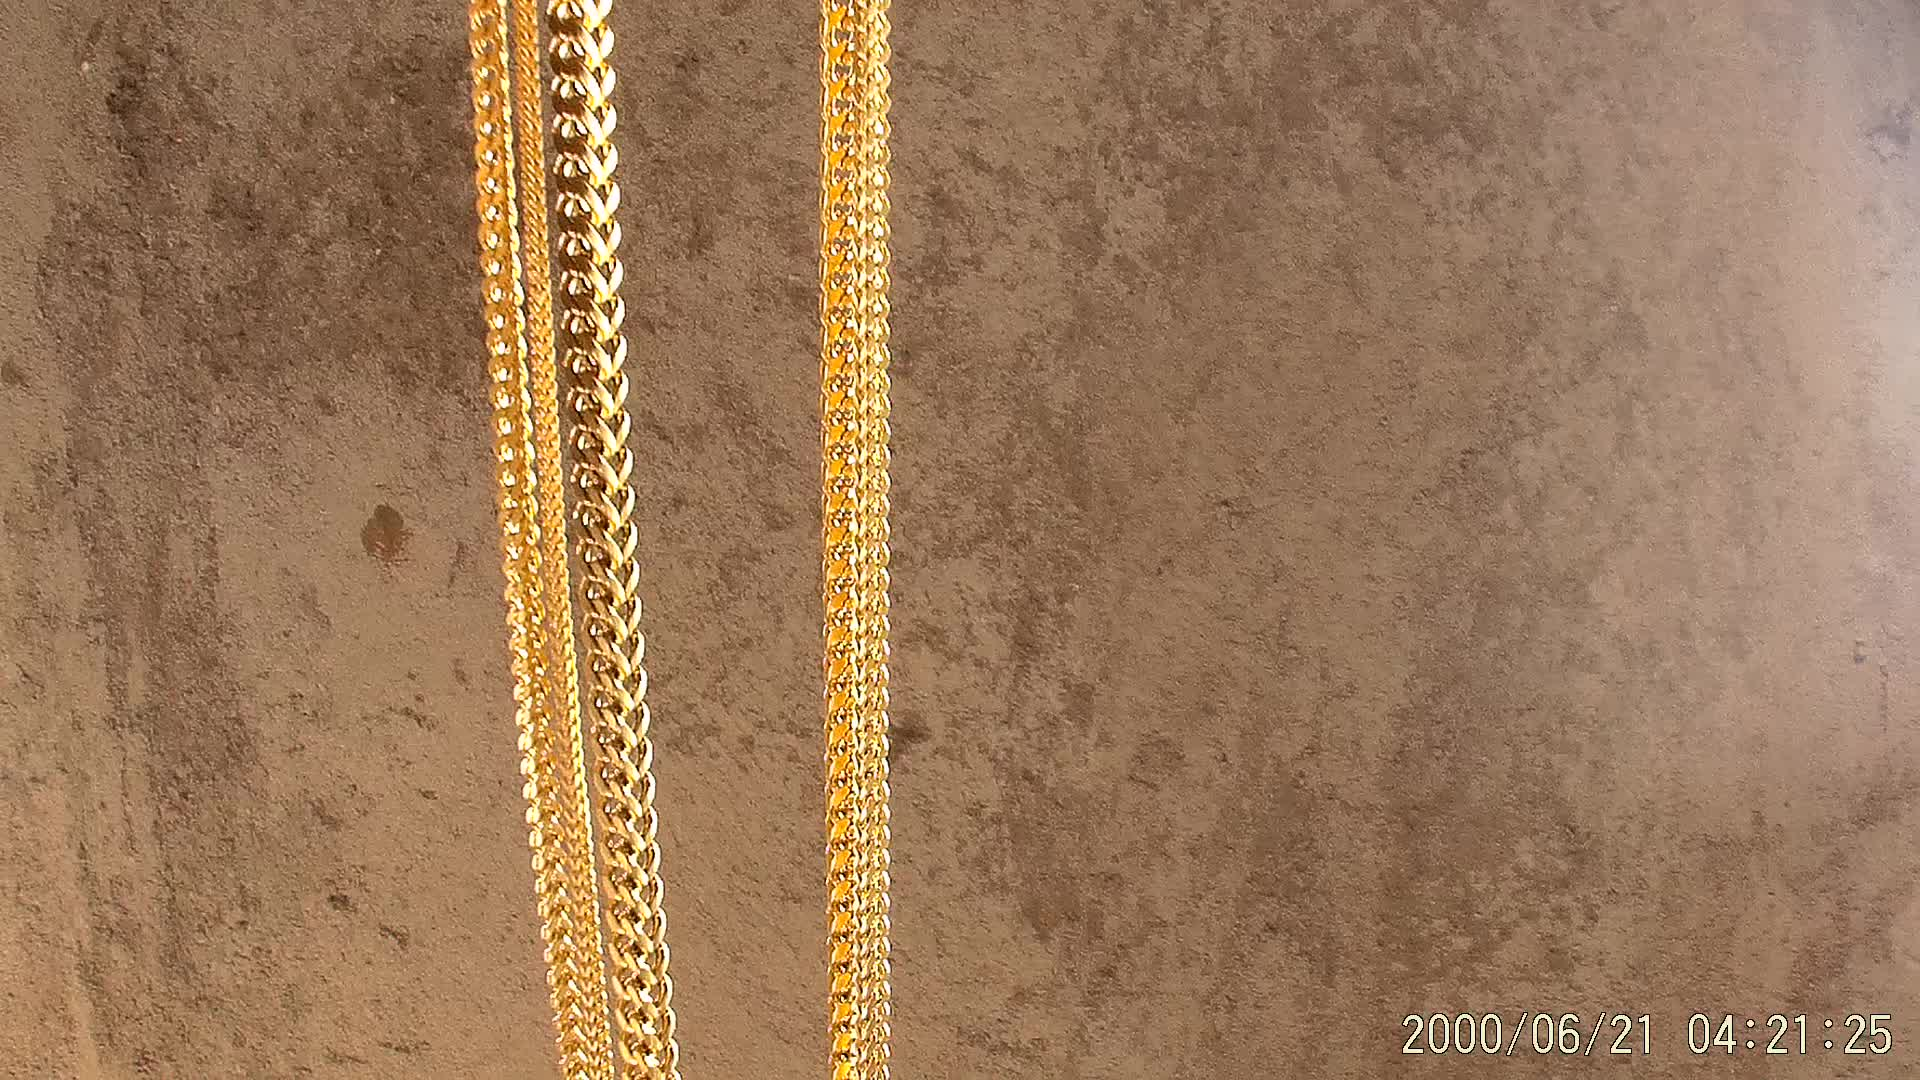 Miss Jewelry New Men's Lobster Clasp Gold Thin Chain Necklace Design in Dubai 14k 18k Gold Link Franco Chain